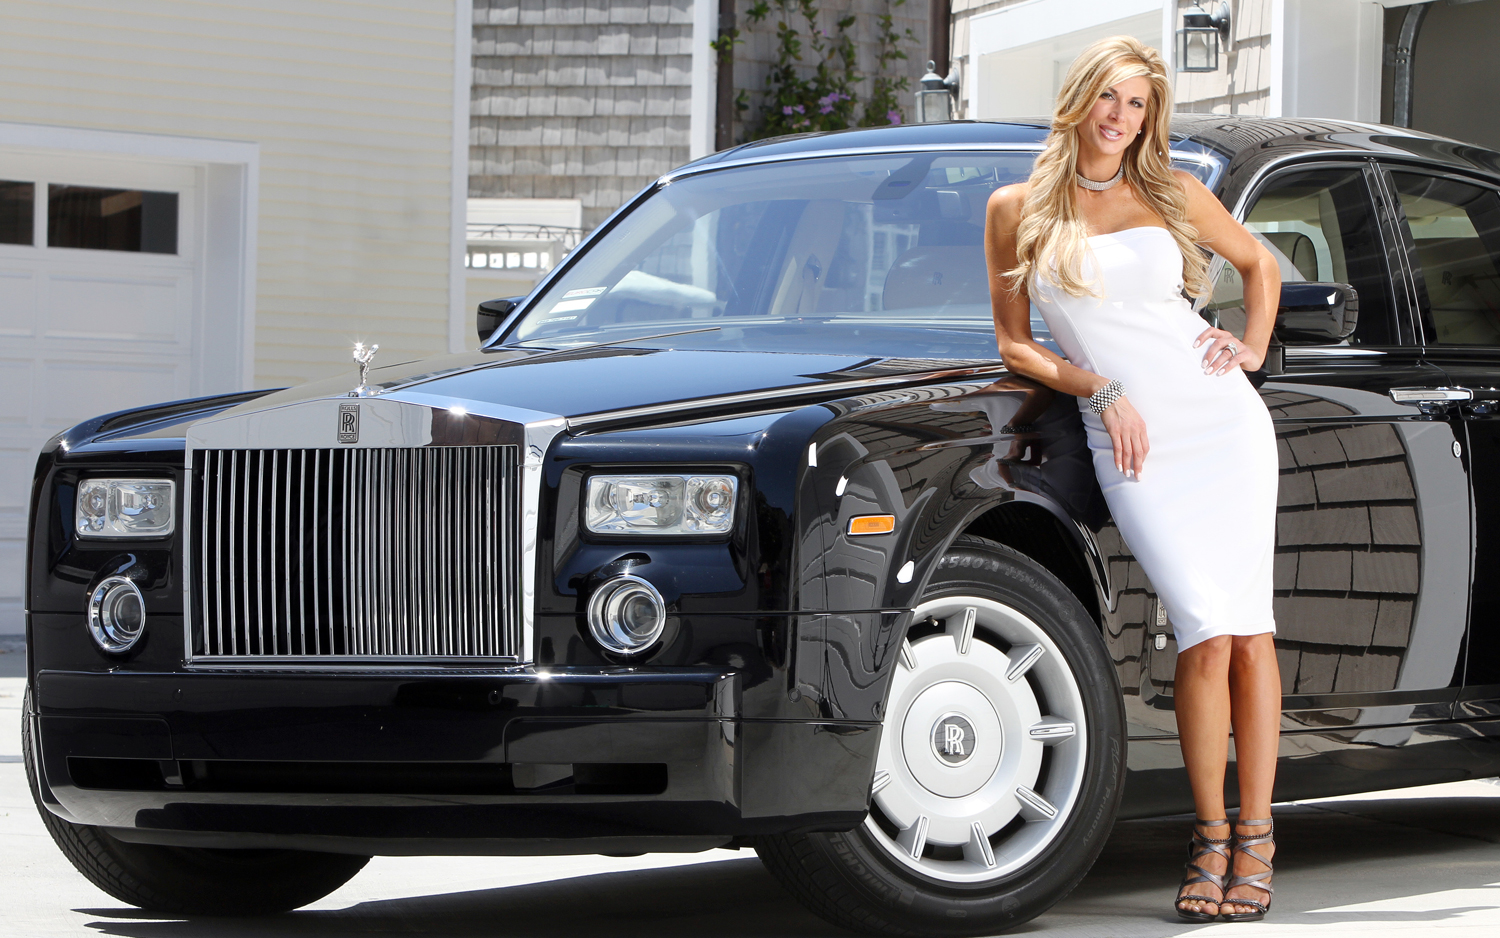 Rolls Royce The Pinnacle Of Car Luxury Can You Guess How